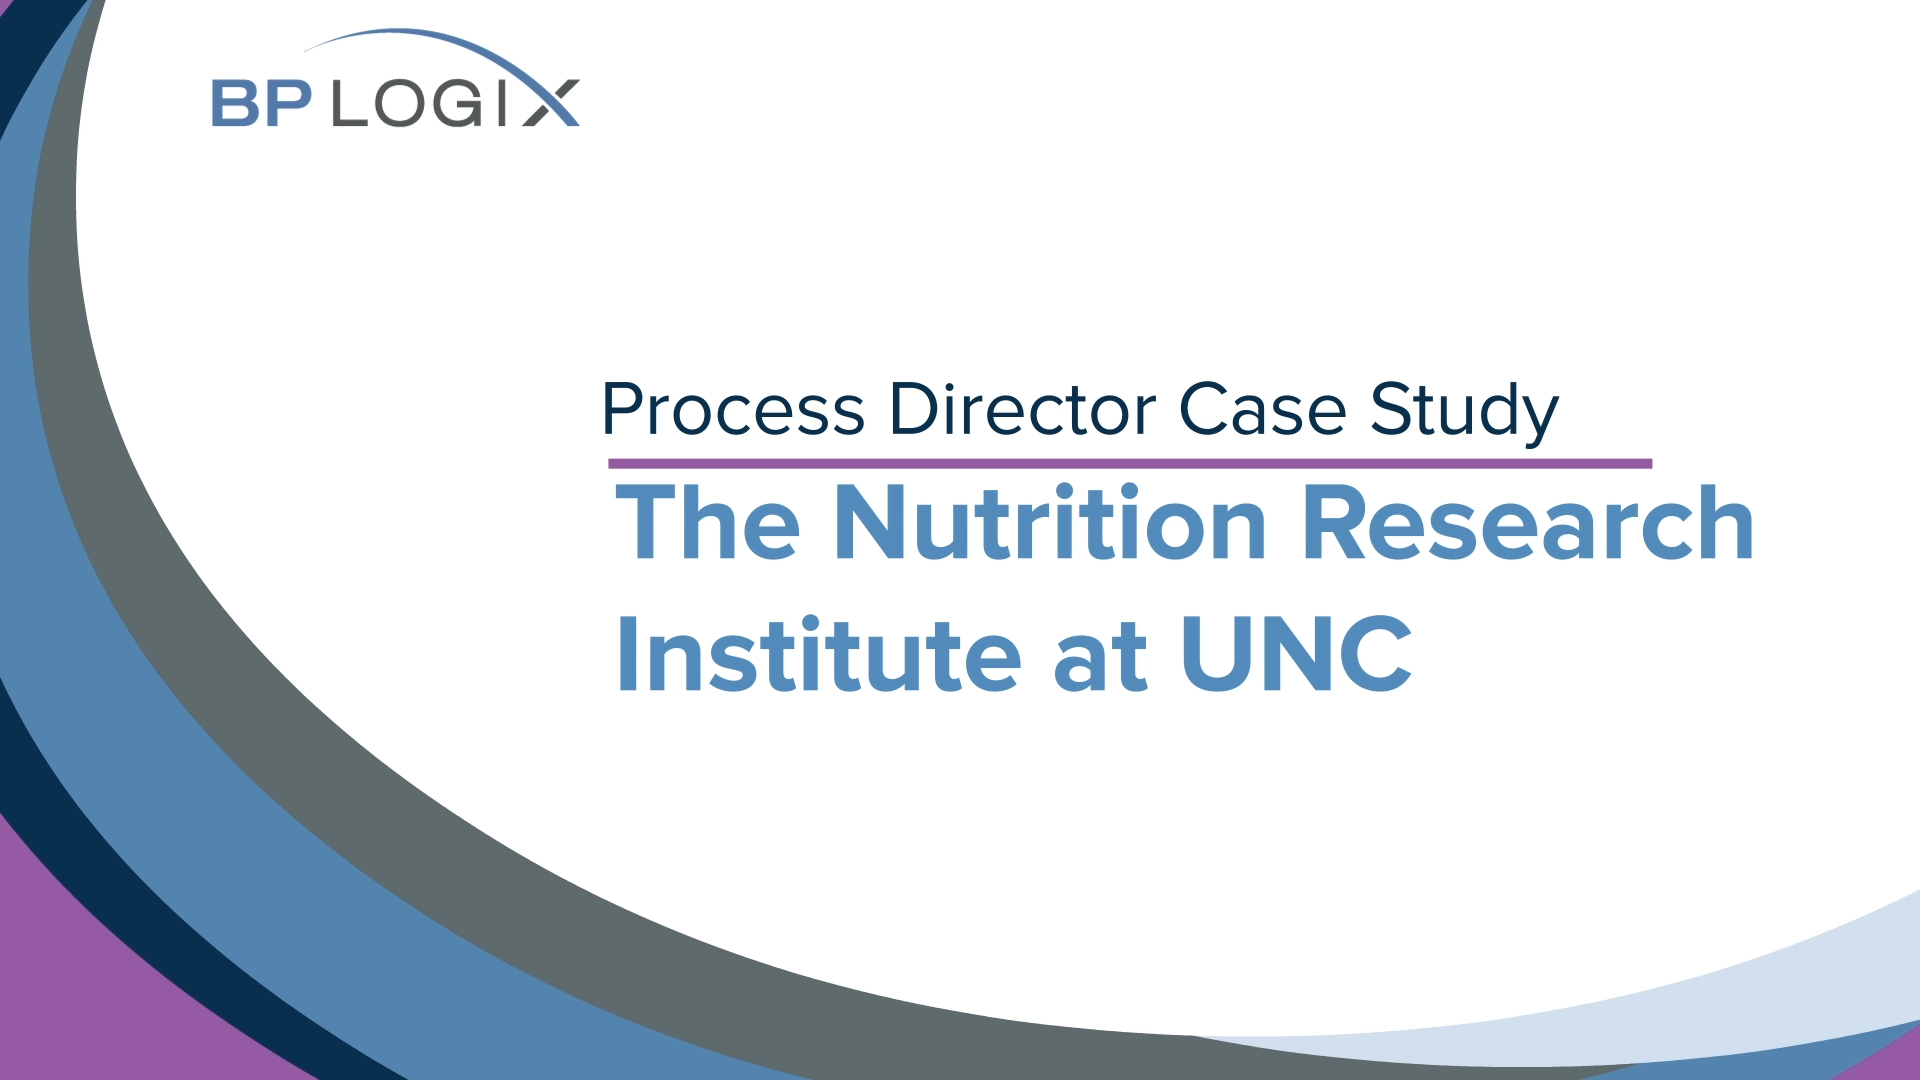 Nutrition Research Institute -  UNC CaseStudy